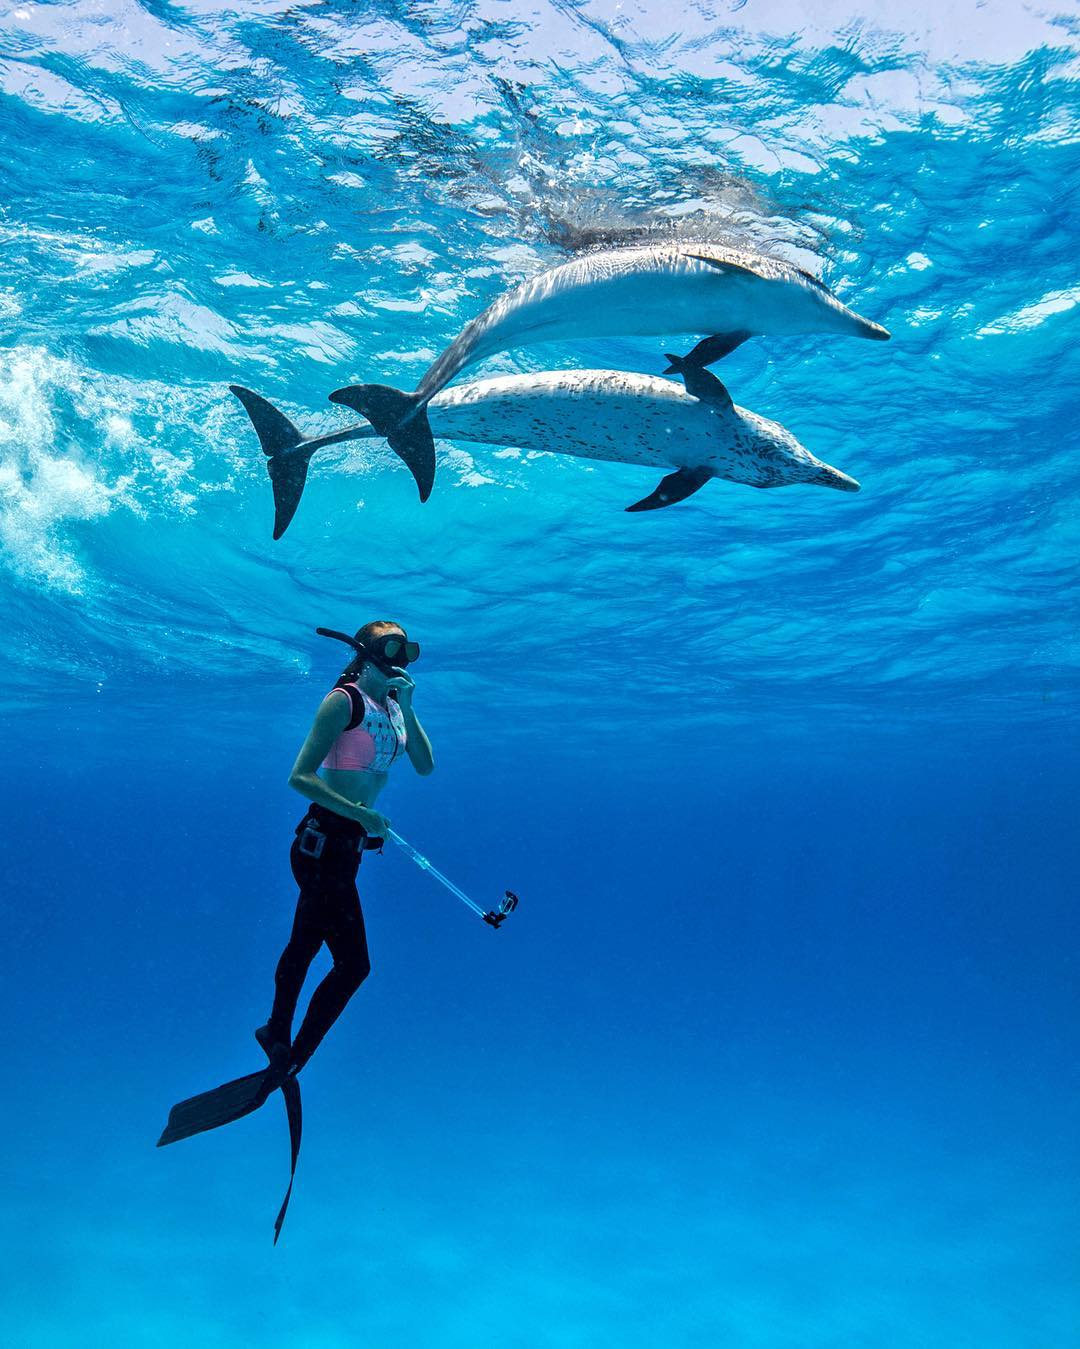 @sharksneedlove freediving with friends in the Bahamas. Photo by @katiegrudecki. #gopro #gopole #gopoleevo #freediving #dolphins #